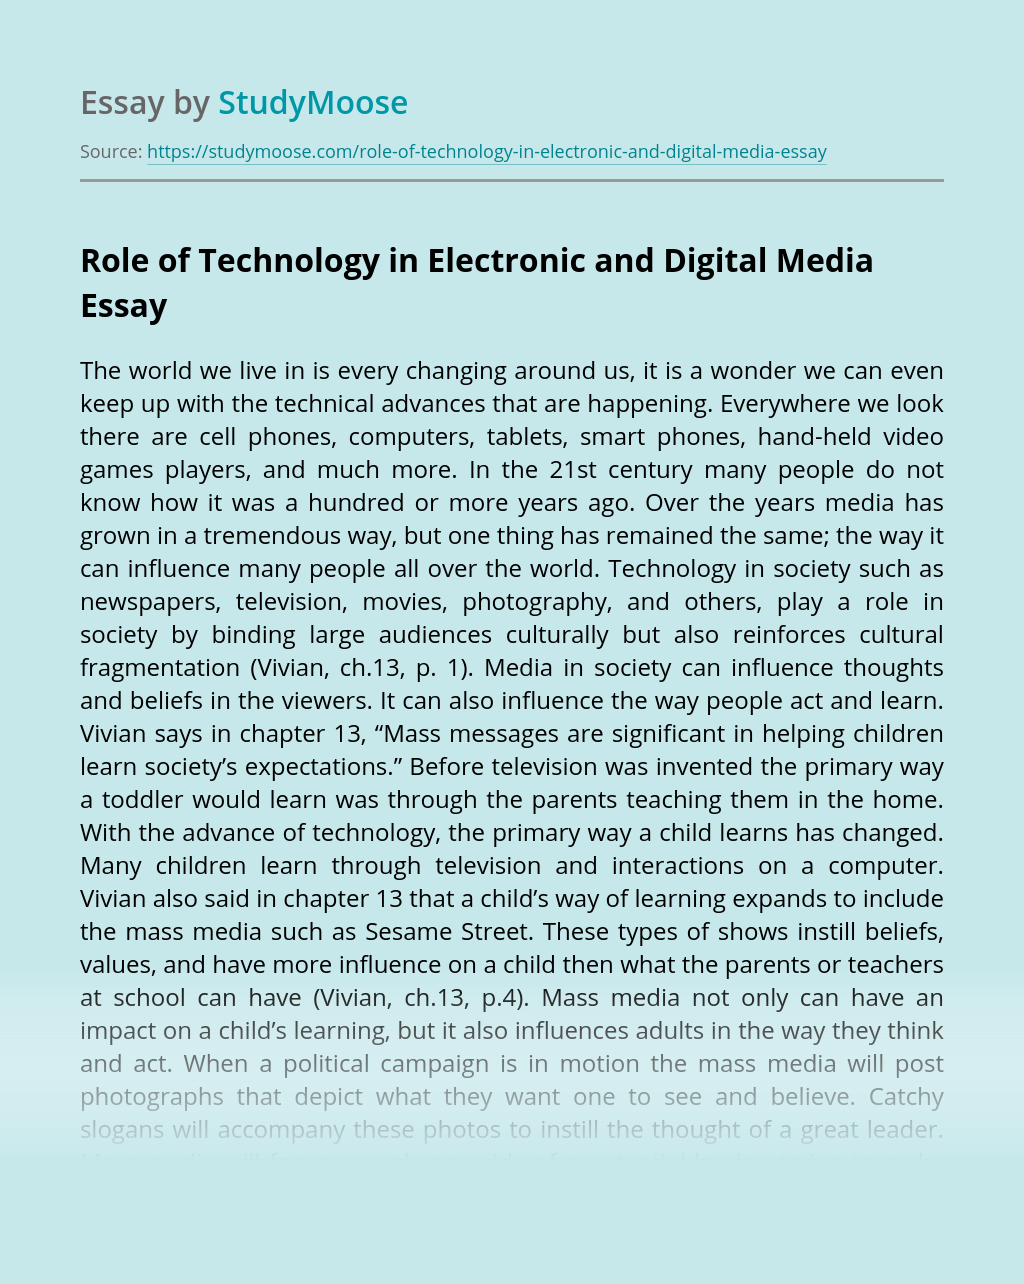 Role of Technology in Electronic and Digital Media